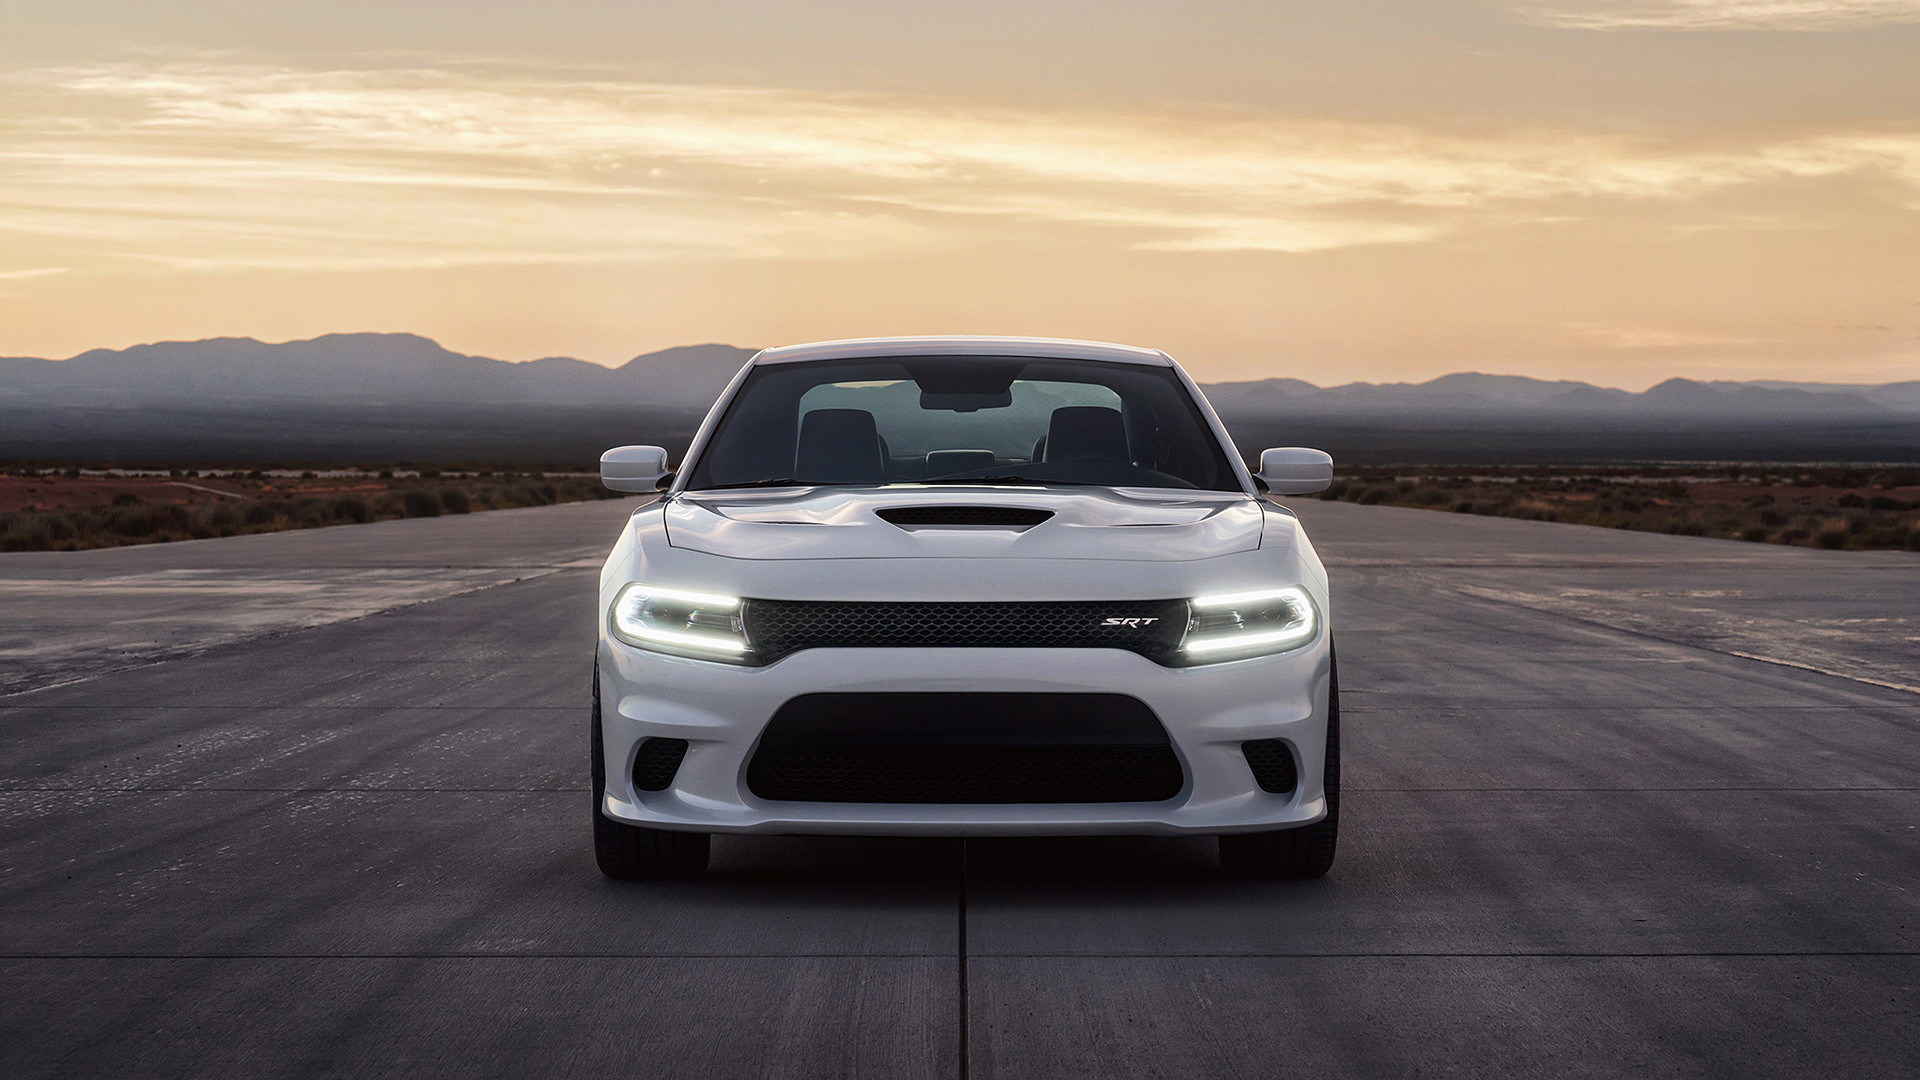 2015 Dodge Charger SRT Hellcat picture